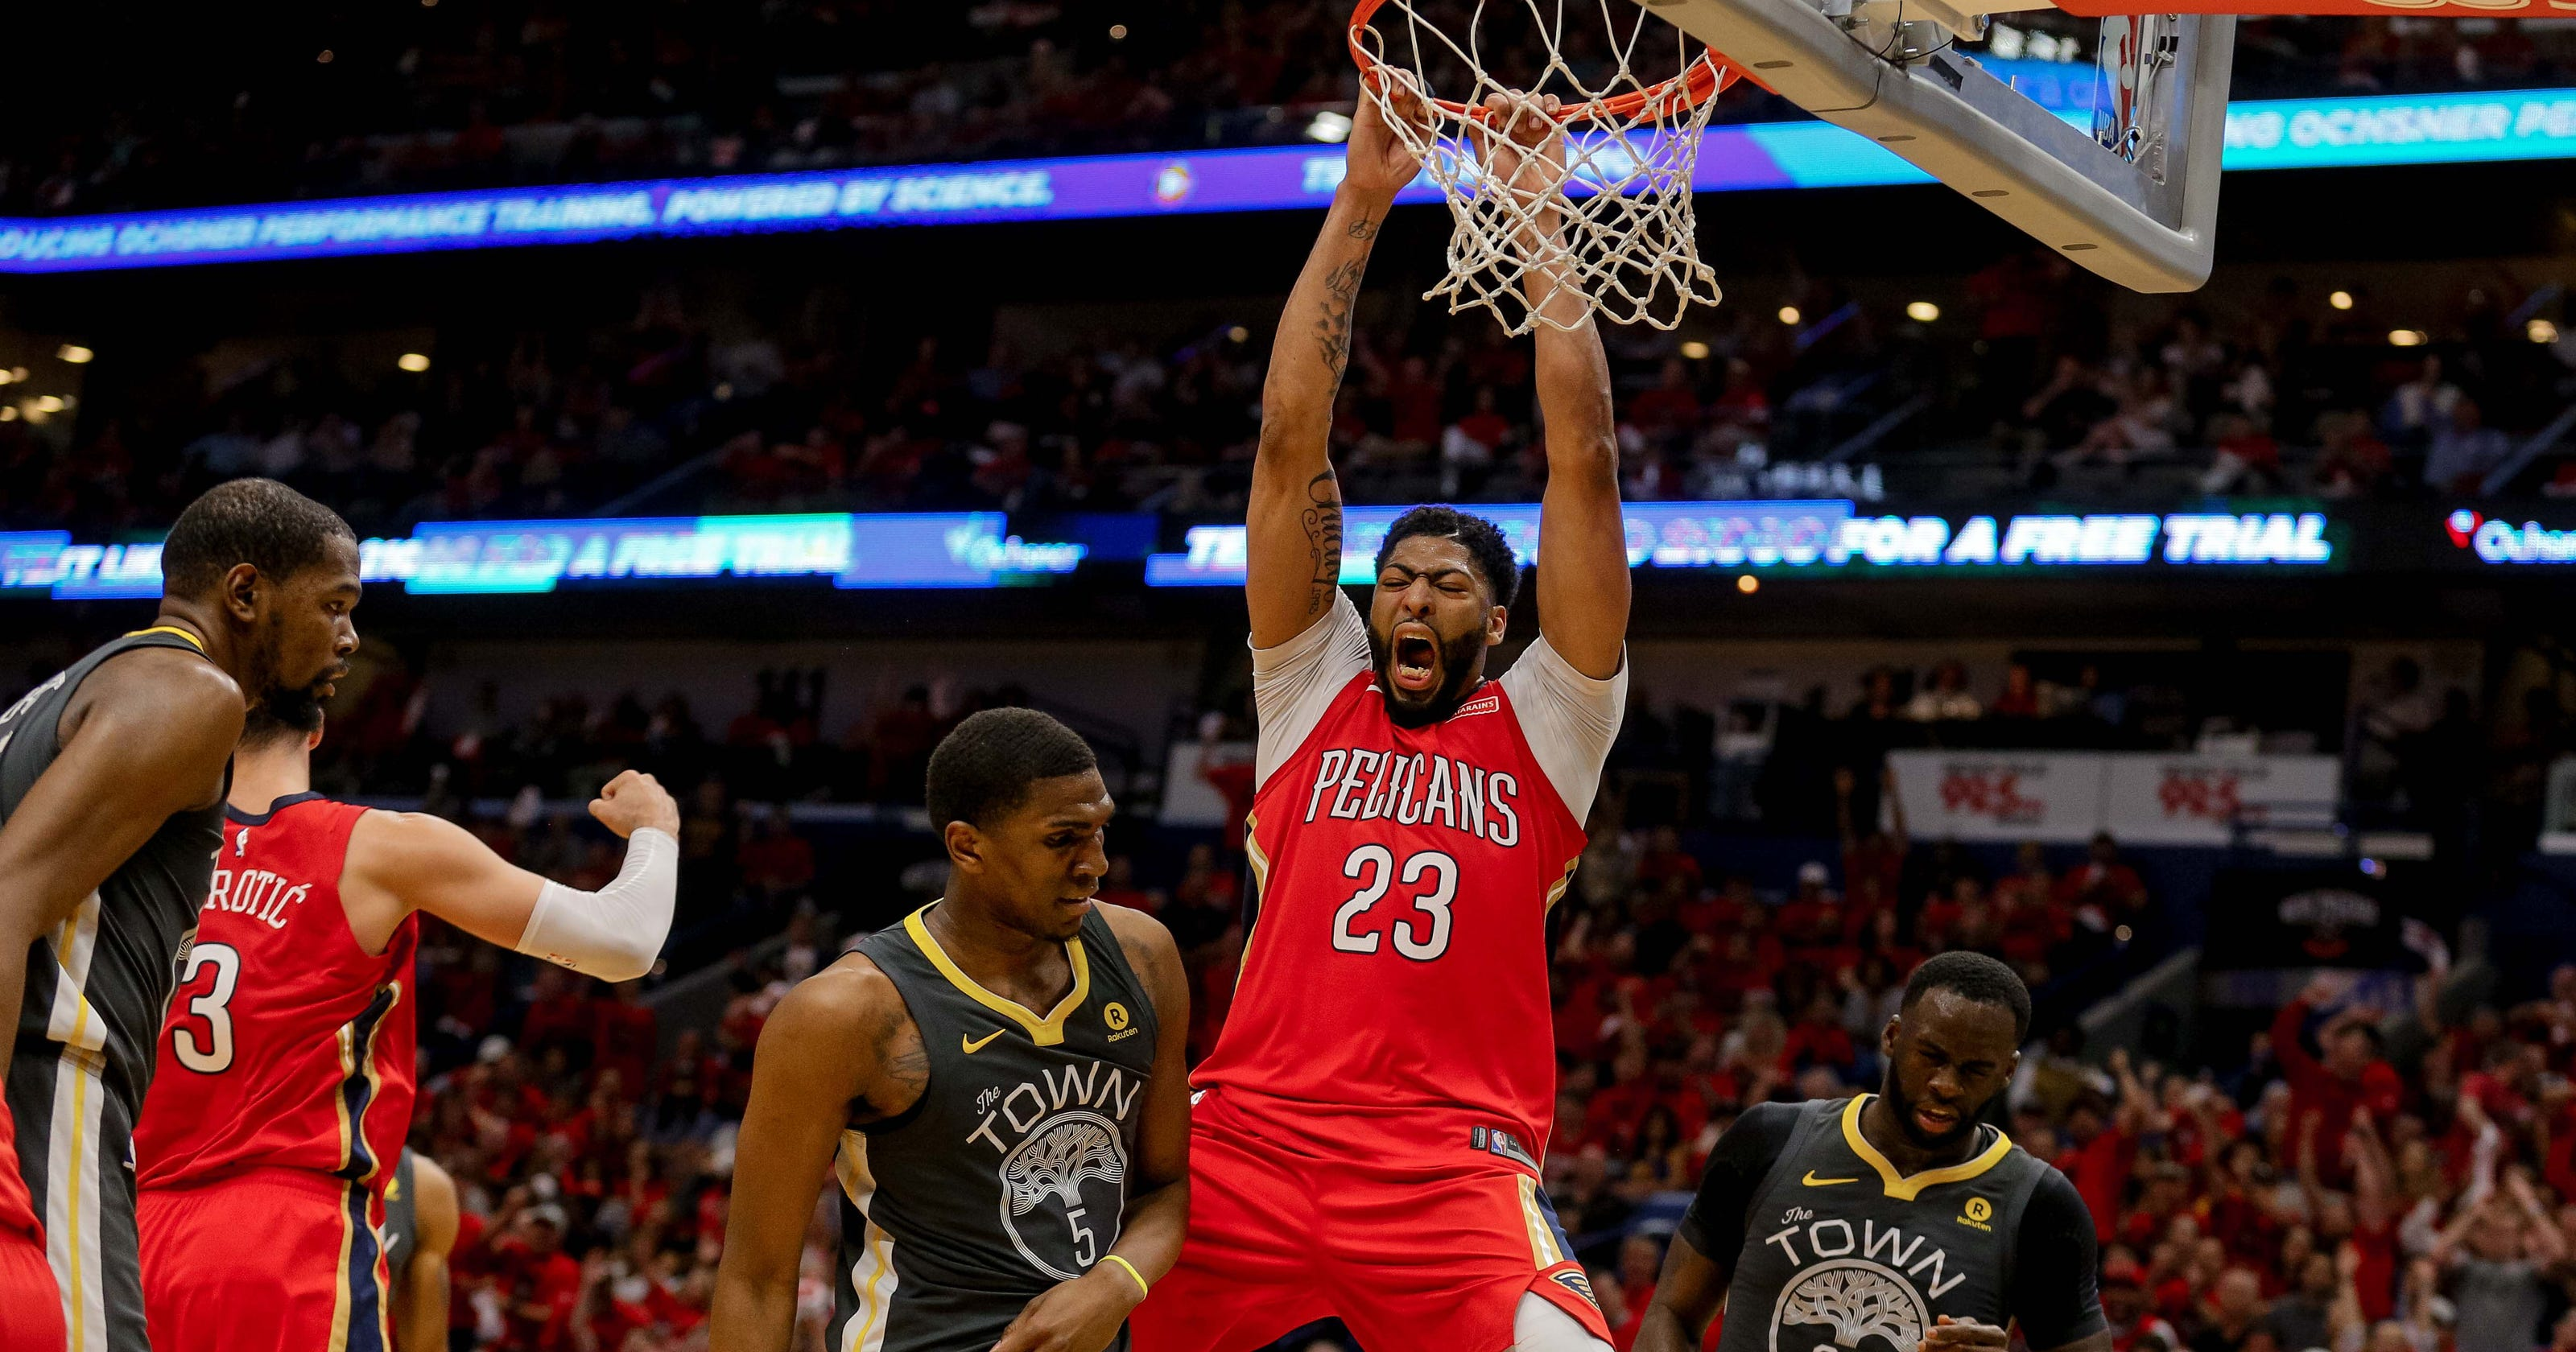 ab1474b488c Pelicans roll past Warriors for huge Game 3 win